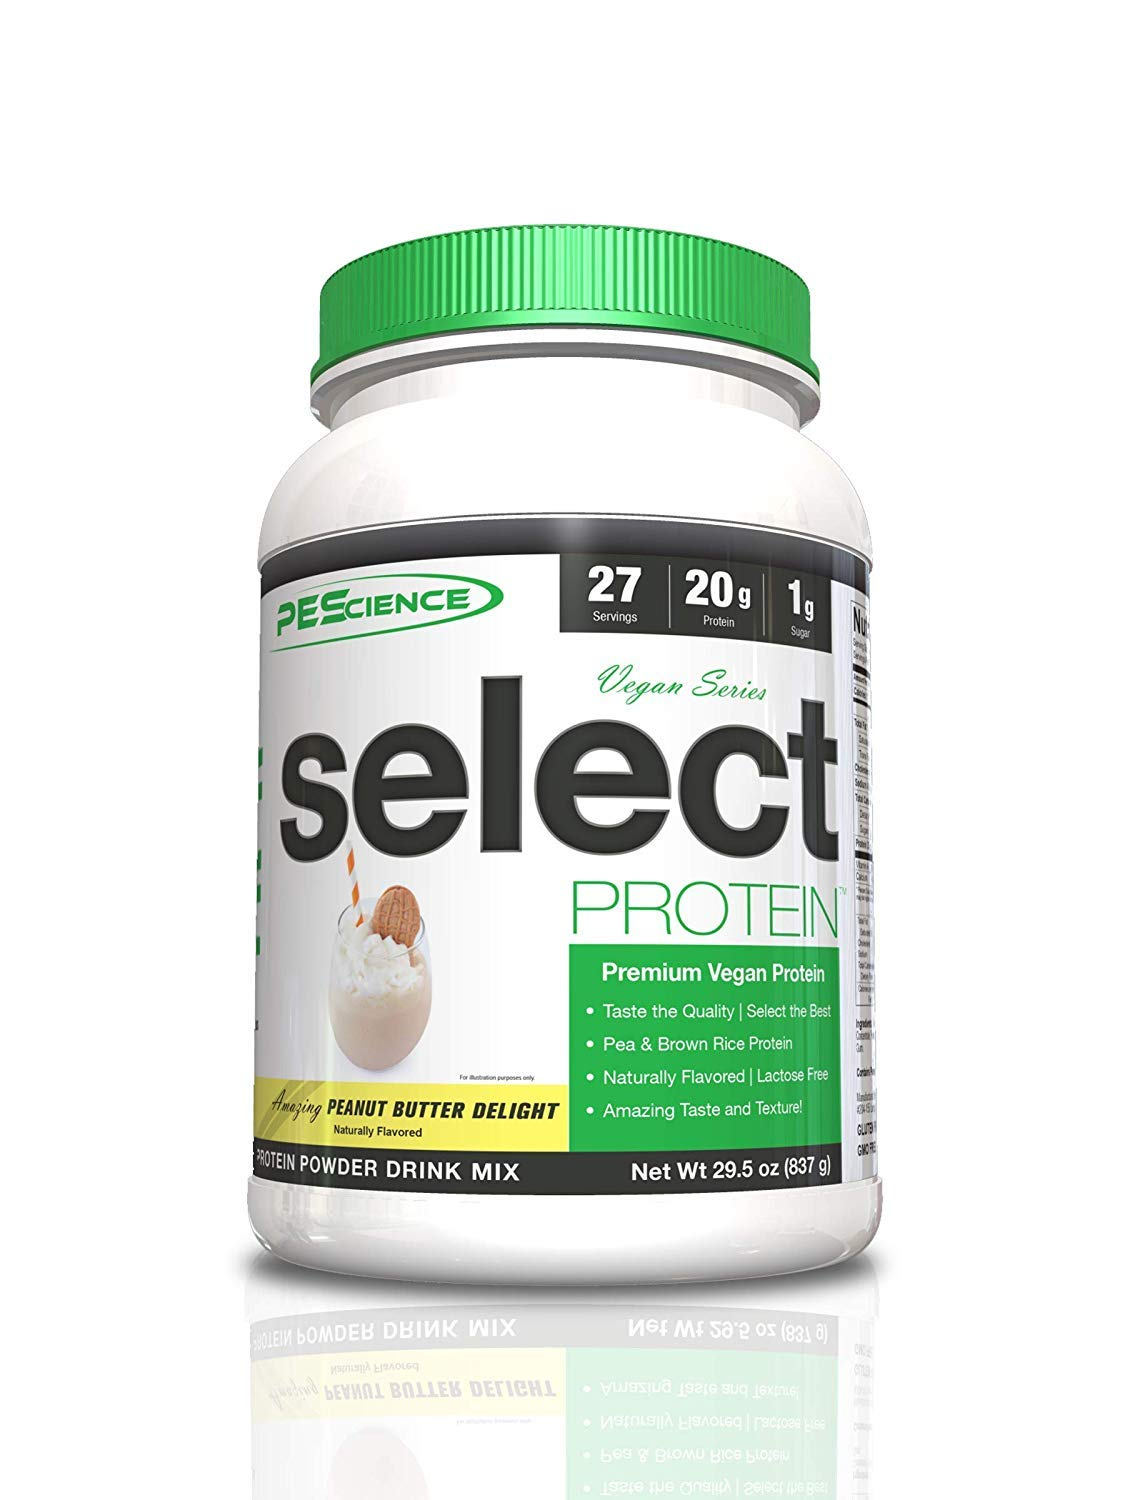 Pescience Select Vegan Protein, White, Peanut Butter Delight, 2 Pound